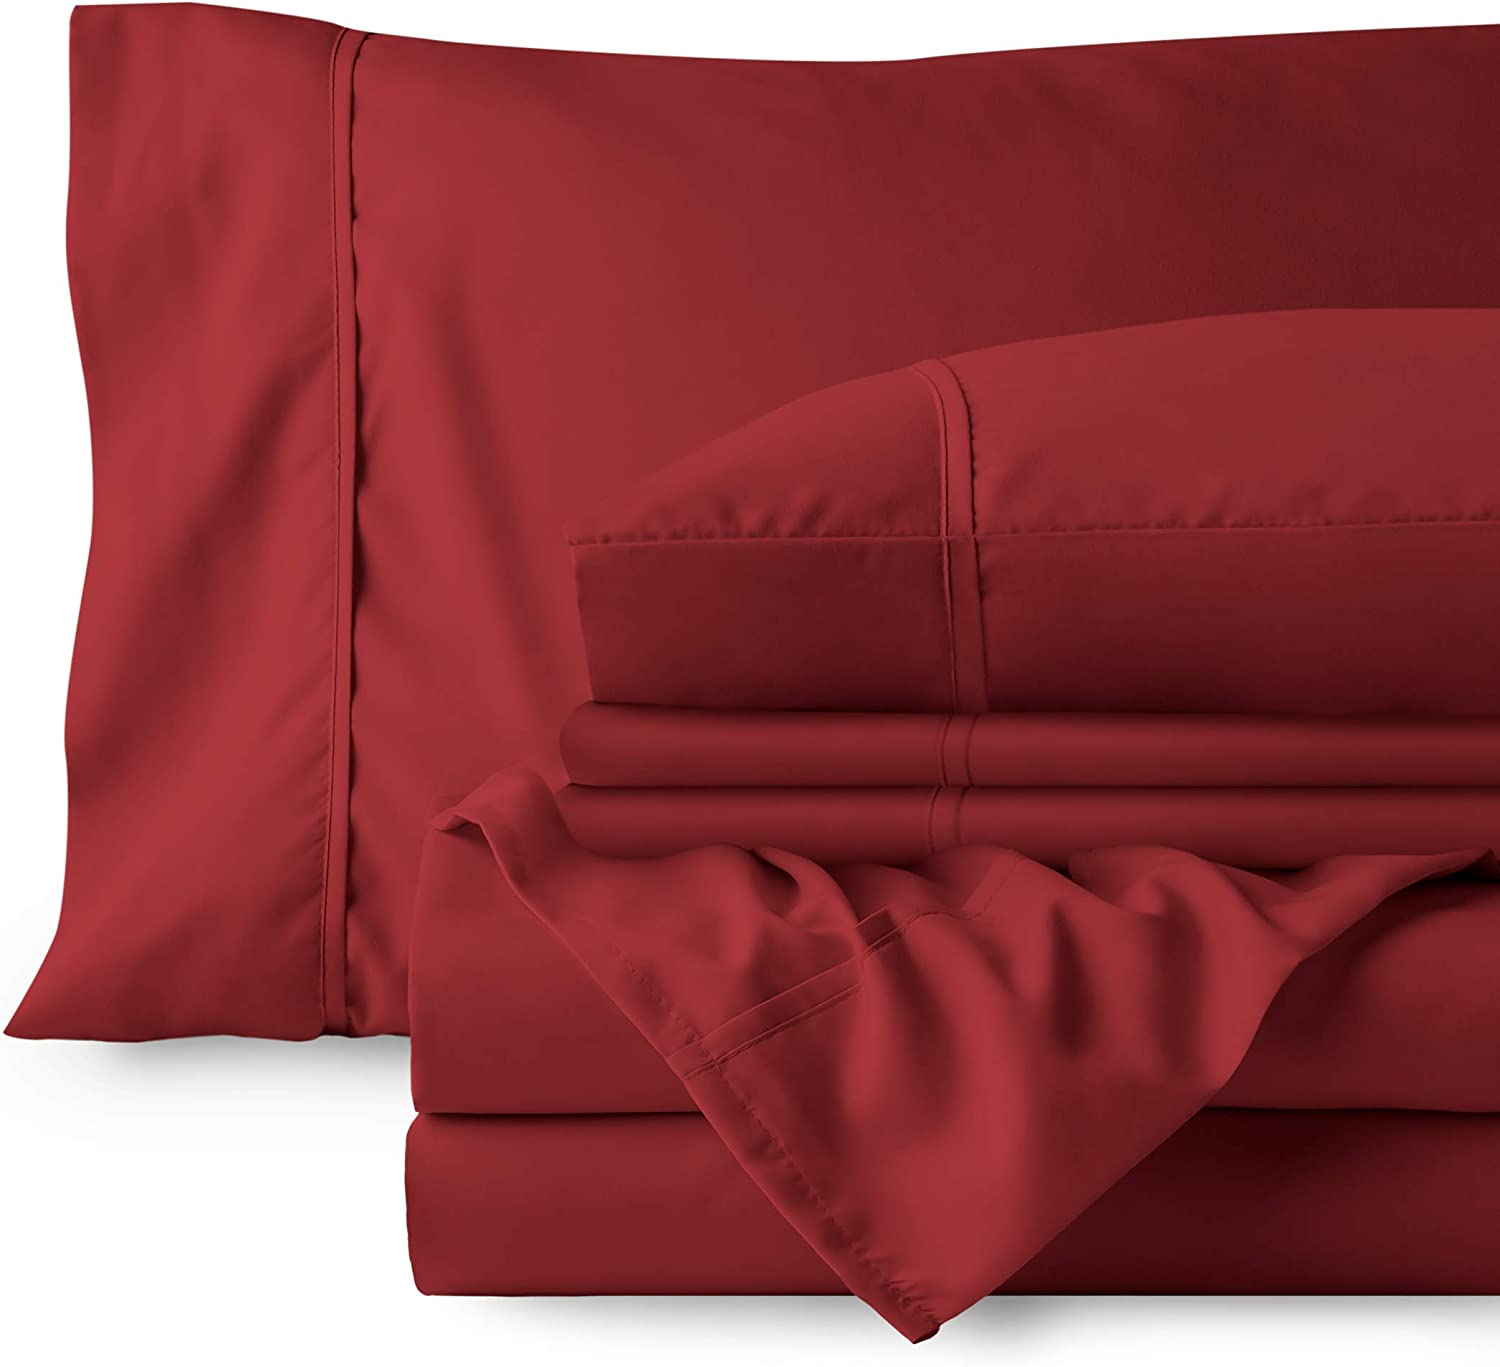 Bare Home 4 Piece 1800 Deep Pocket Bed Sheet Set - Twin Extra Long - Ultra-Soft Hypoallergenic - 2 Pillowcases (Twin XL, Red)